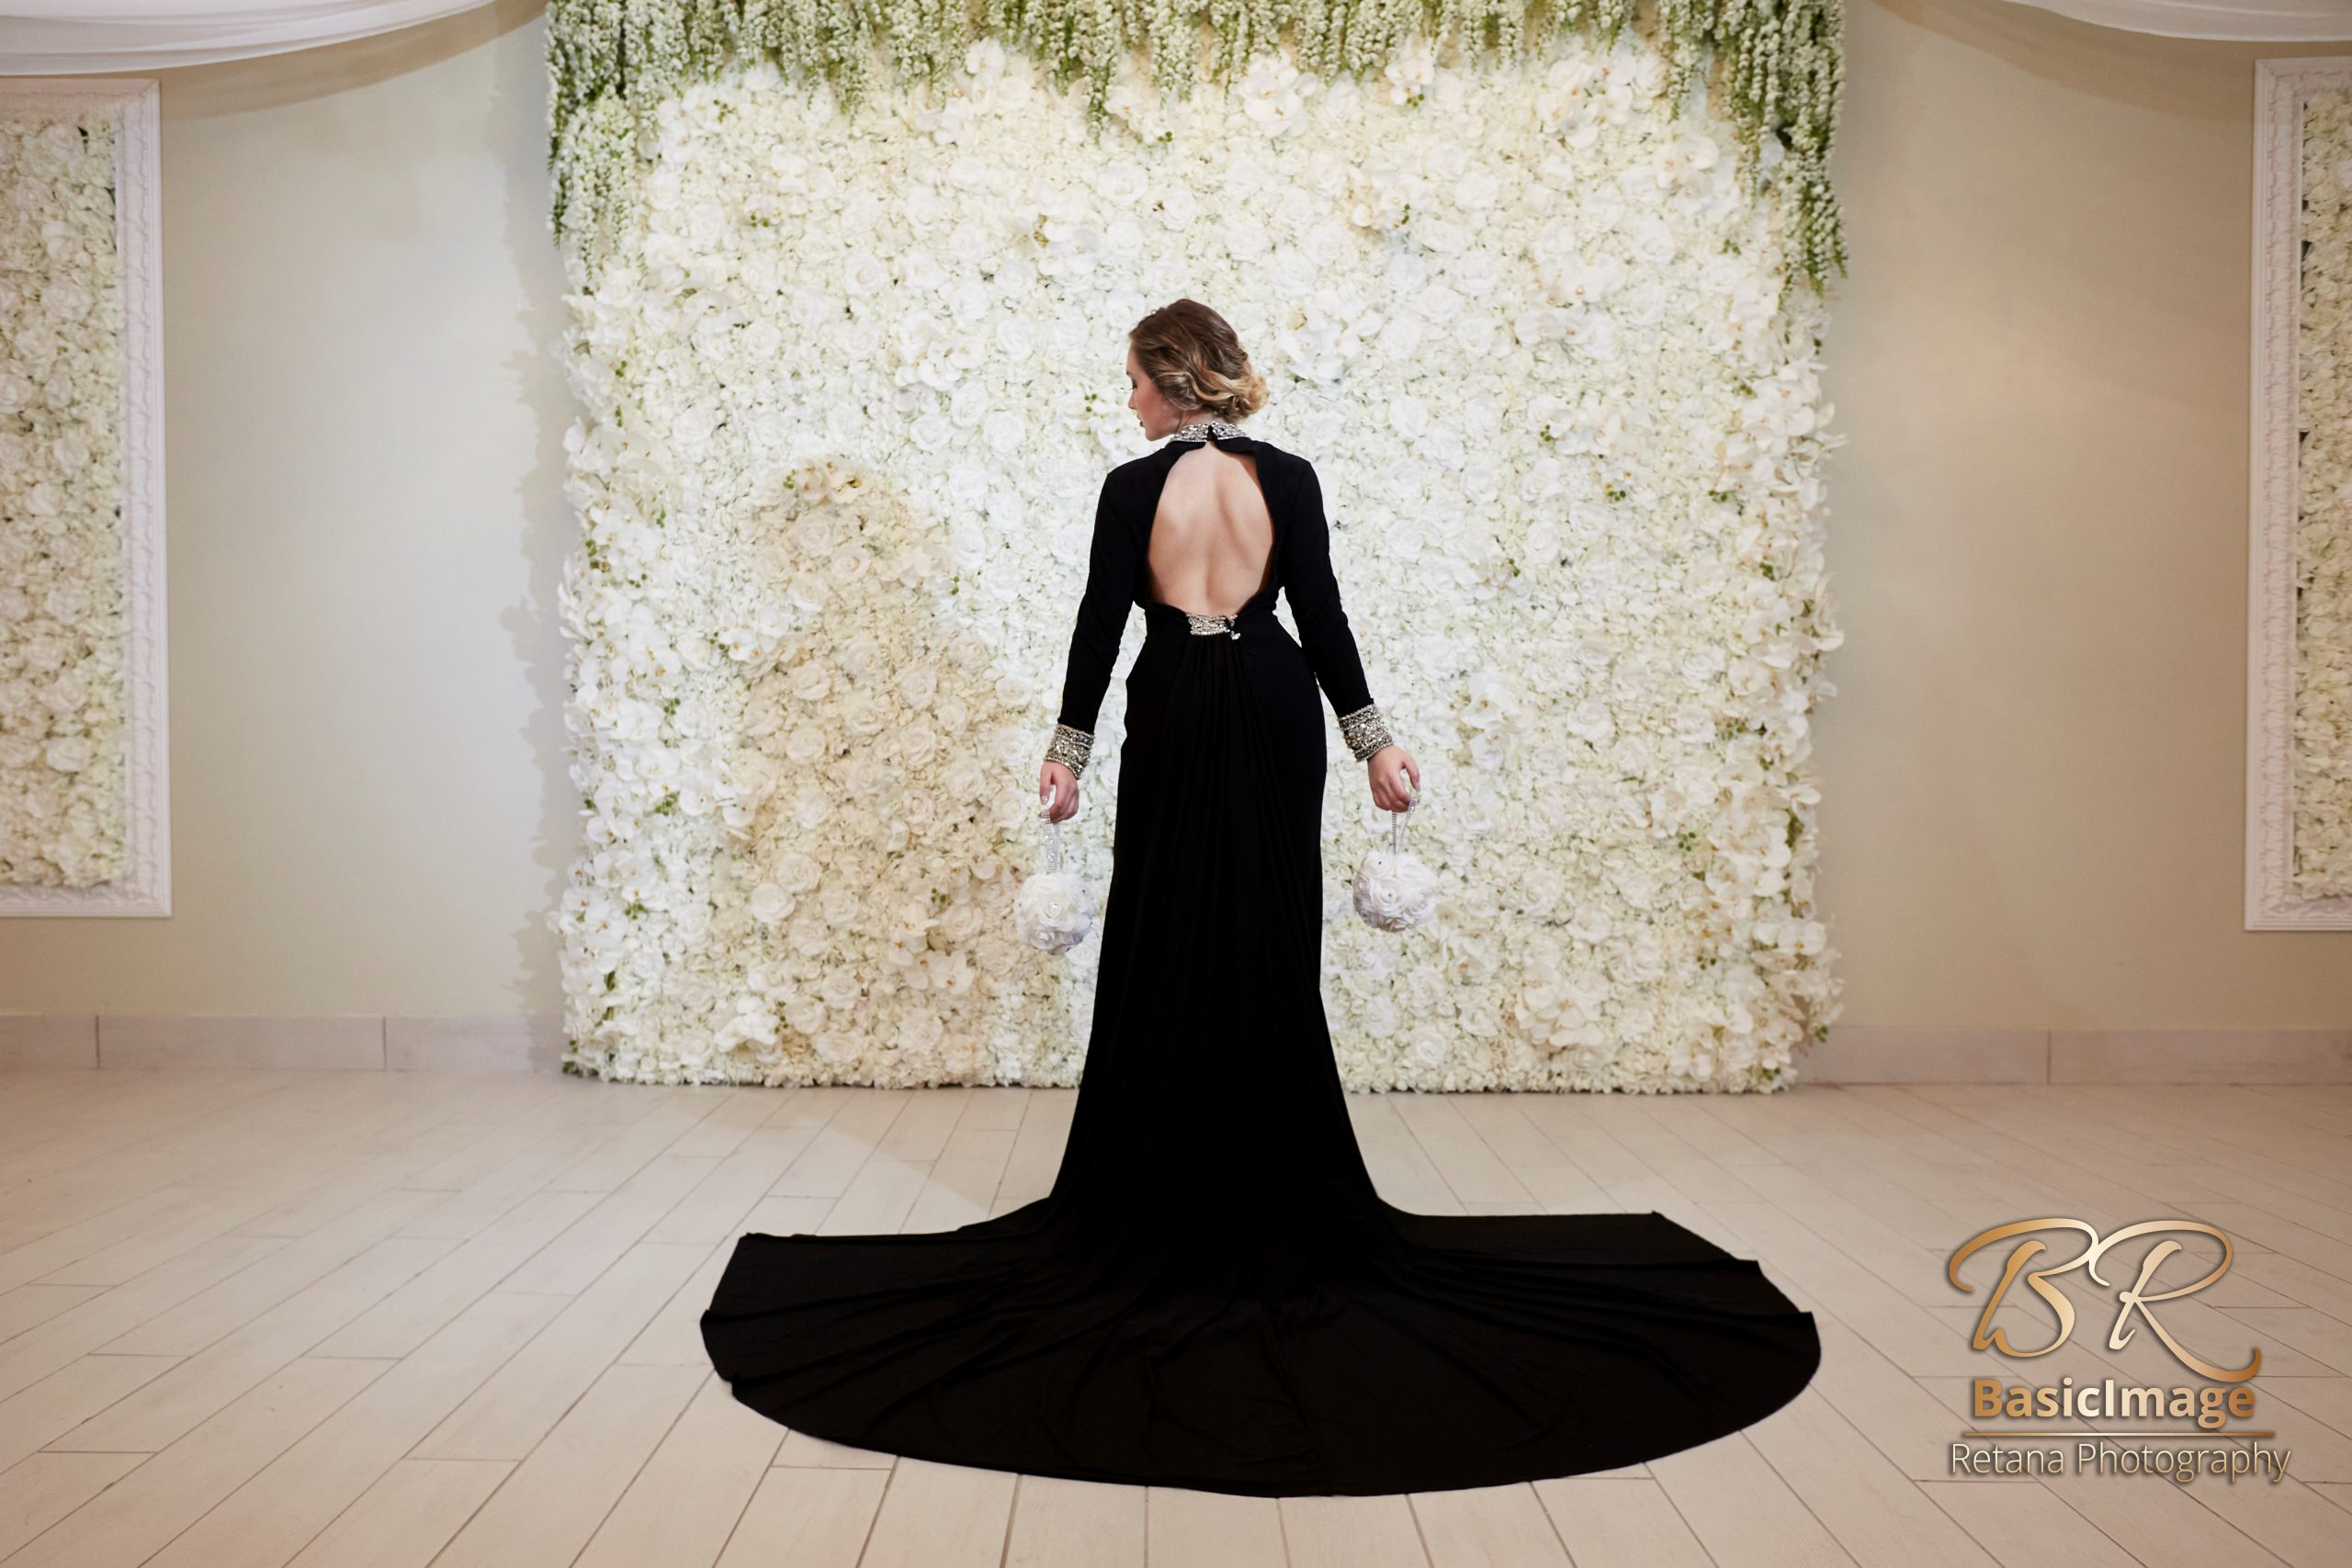 LeVenue model and wall of flowers, back turned